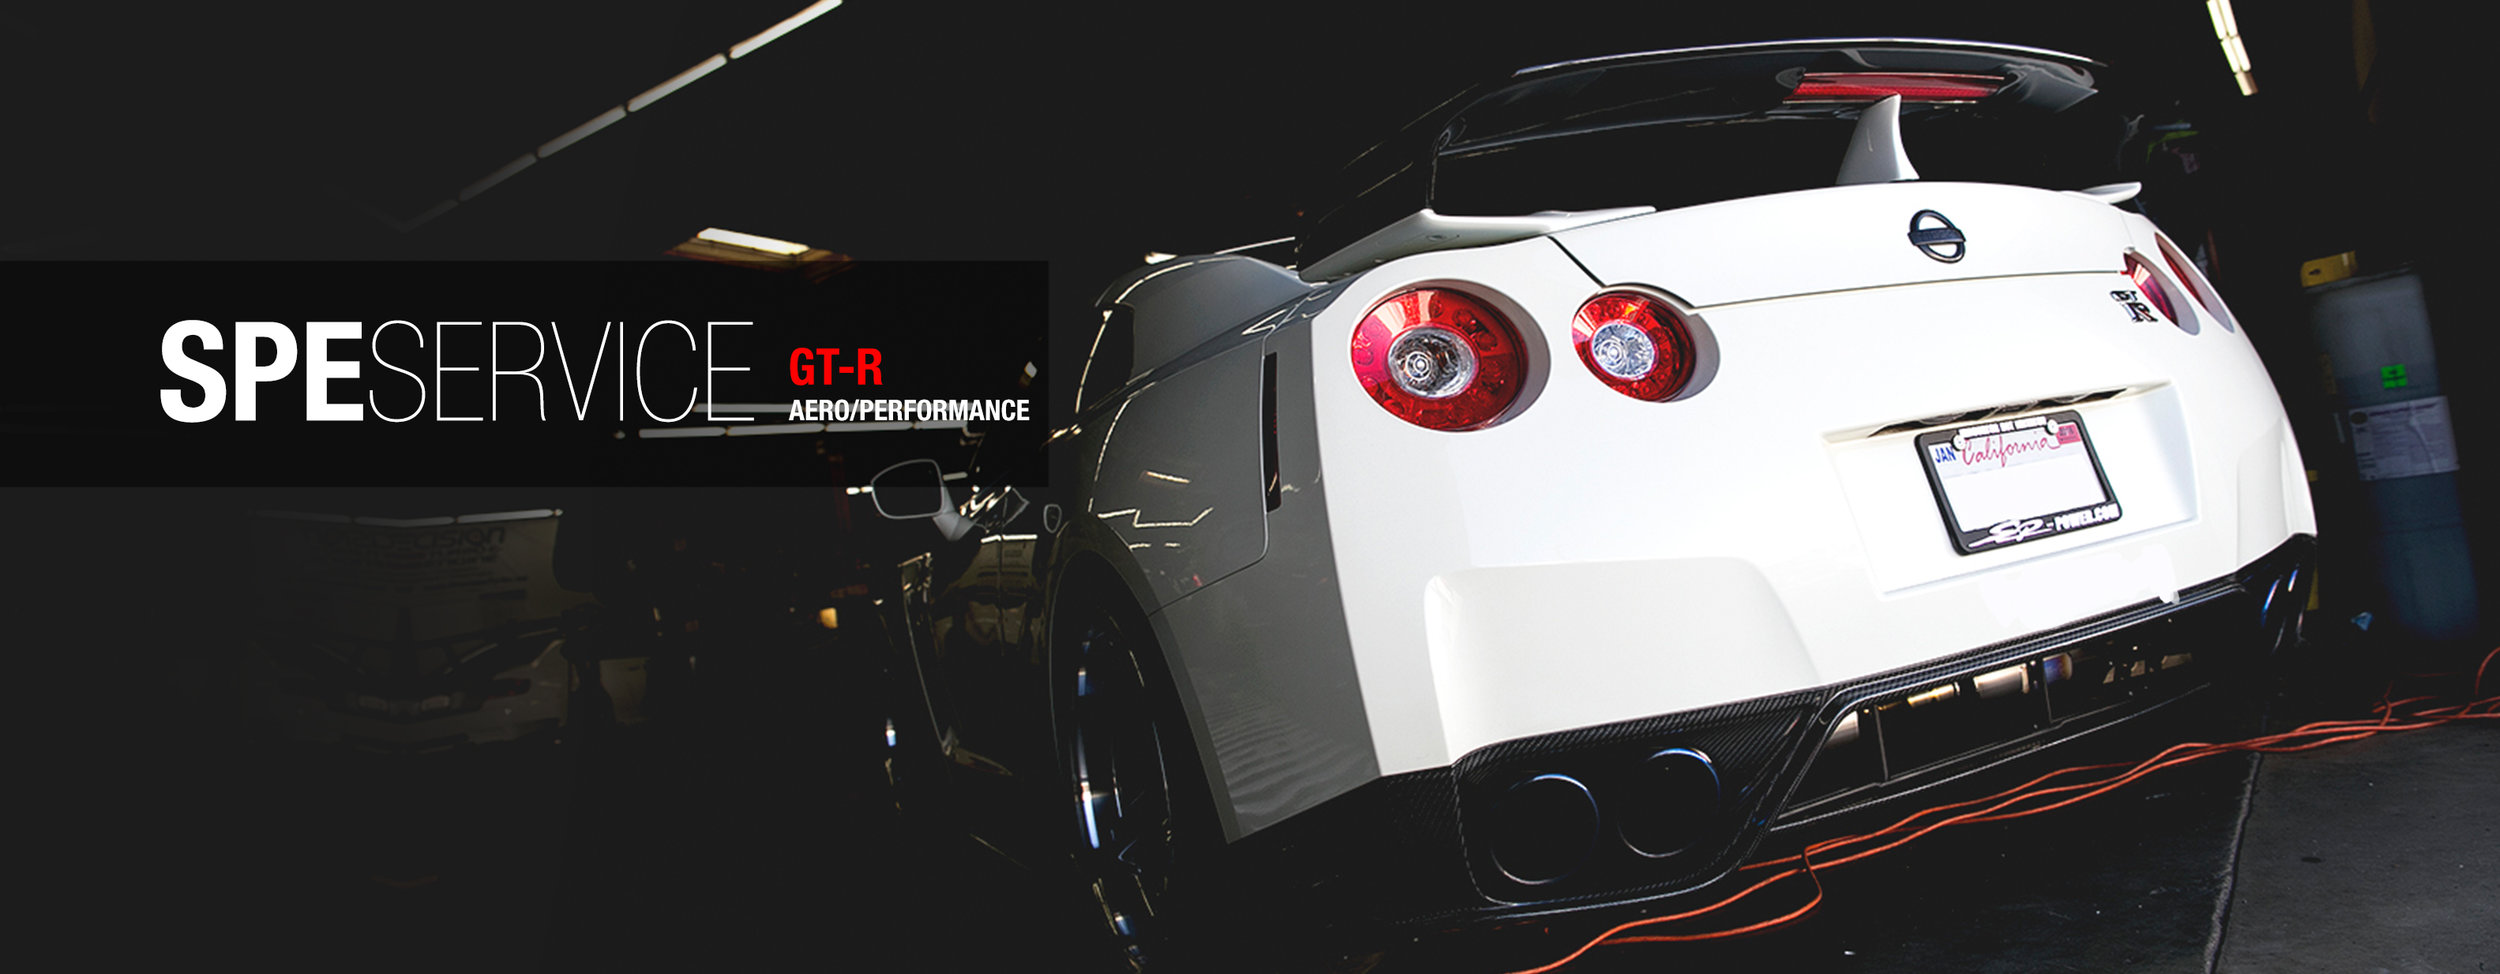 banner_main2_GTR_package.jpg